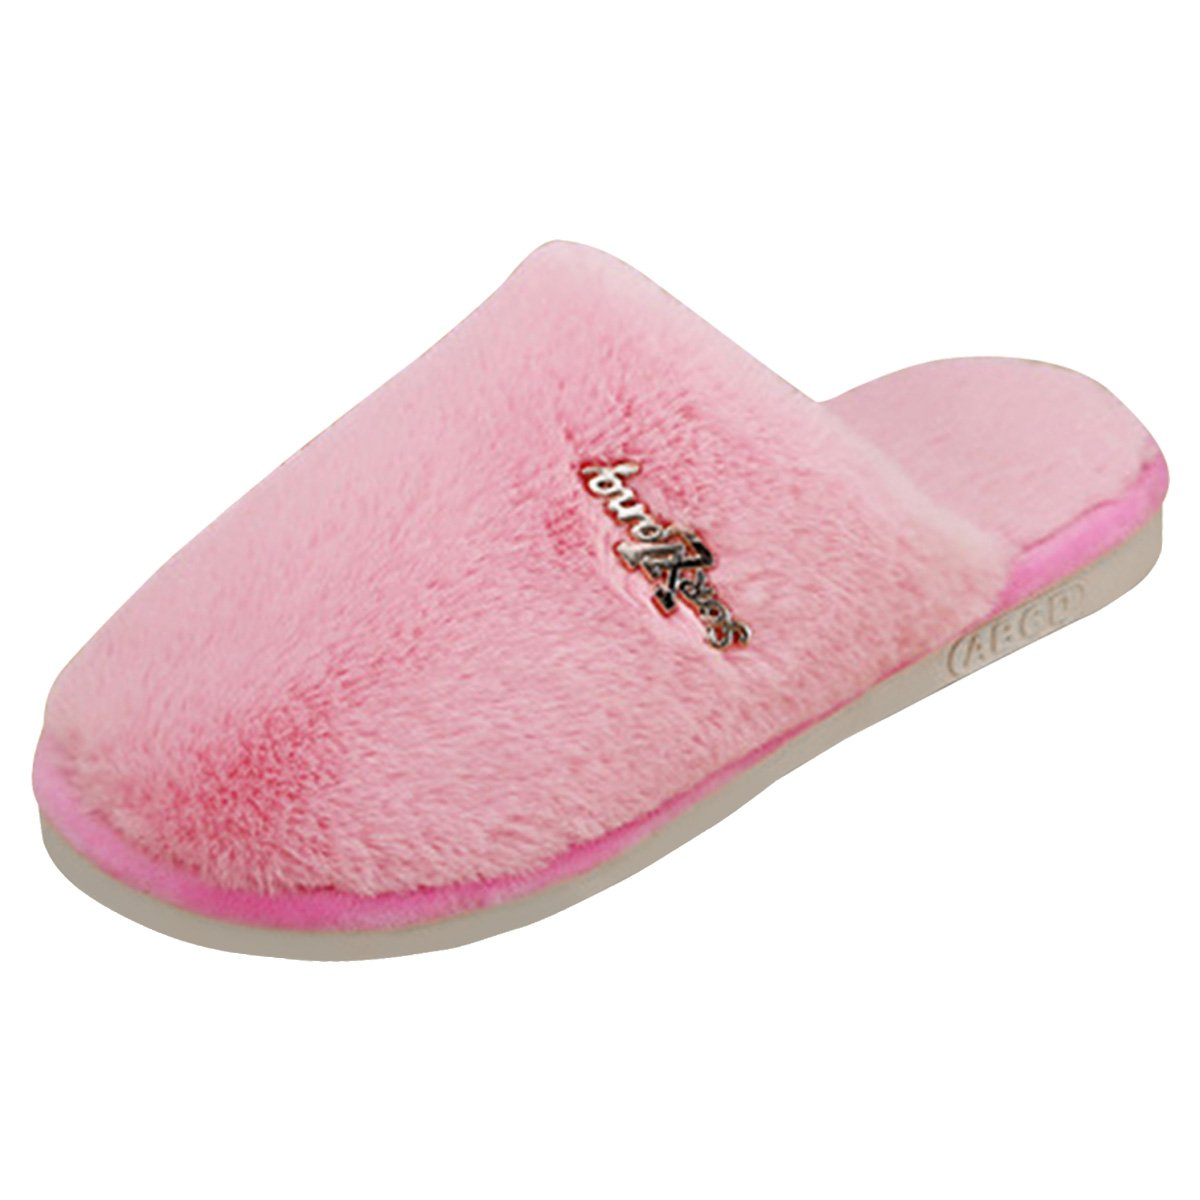 Sasairy Cotton Home Shoes Non-Slip Warm Fur Indoor House Slippers for Men or Women